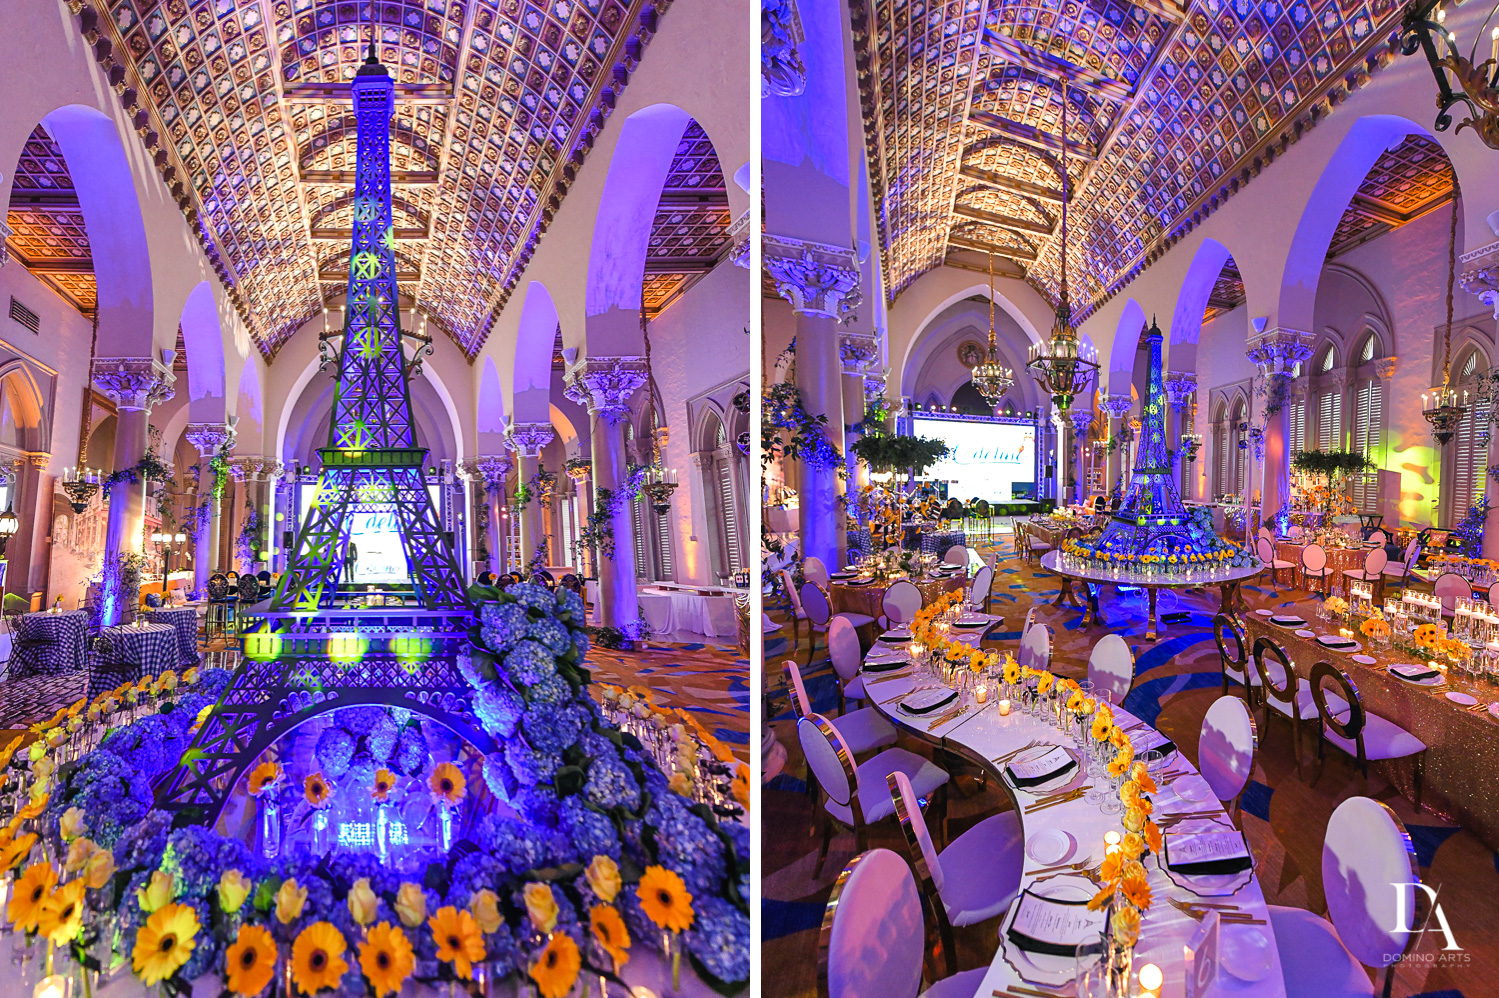 amazing luxury decor at Madeline in Paris theme Bat Mitzvah at Boca Raton Resort and Club by Domino Arts Photography